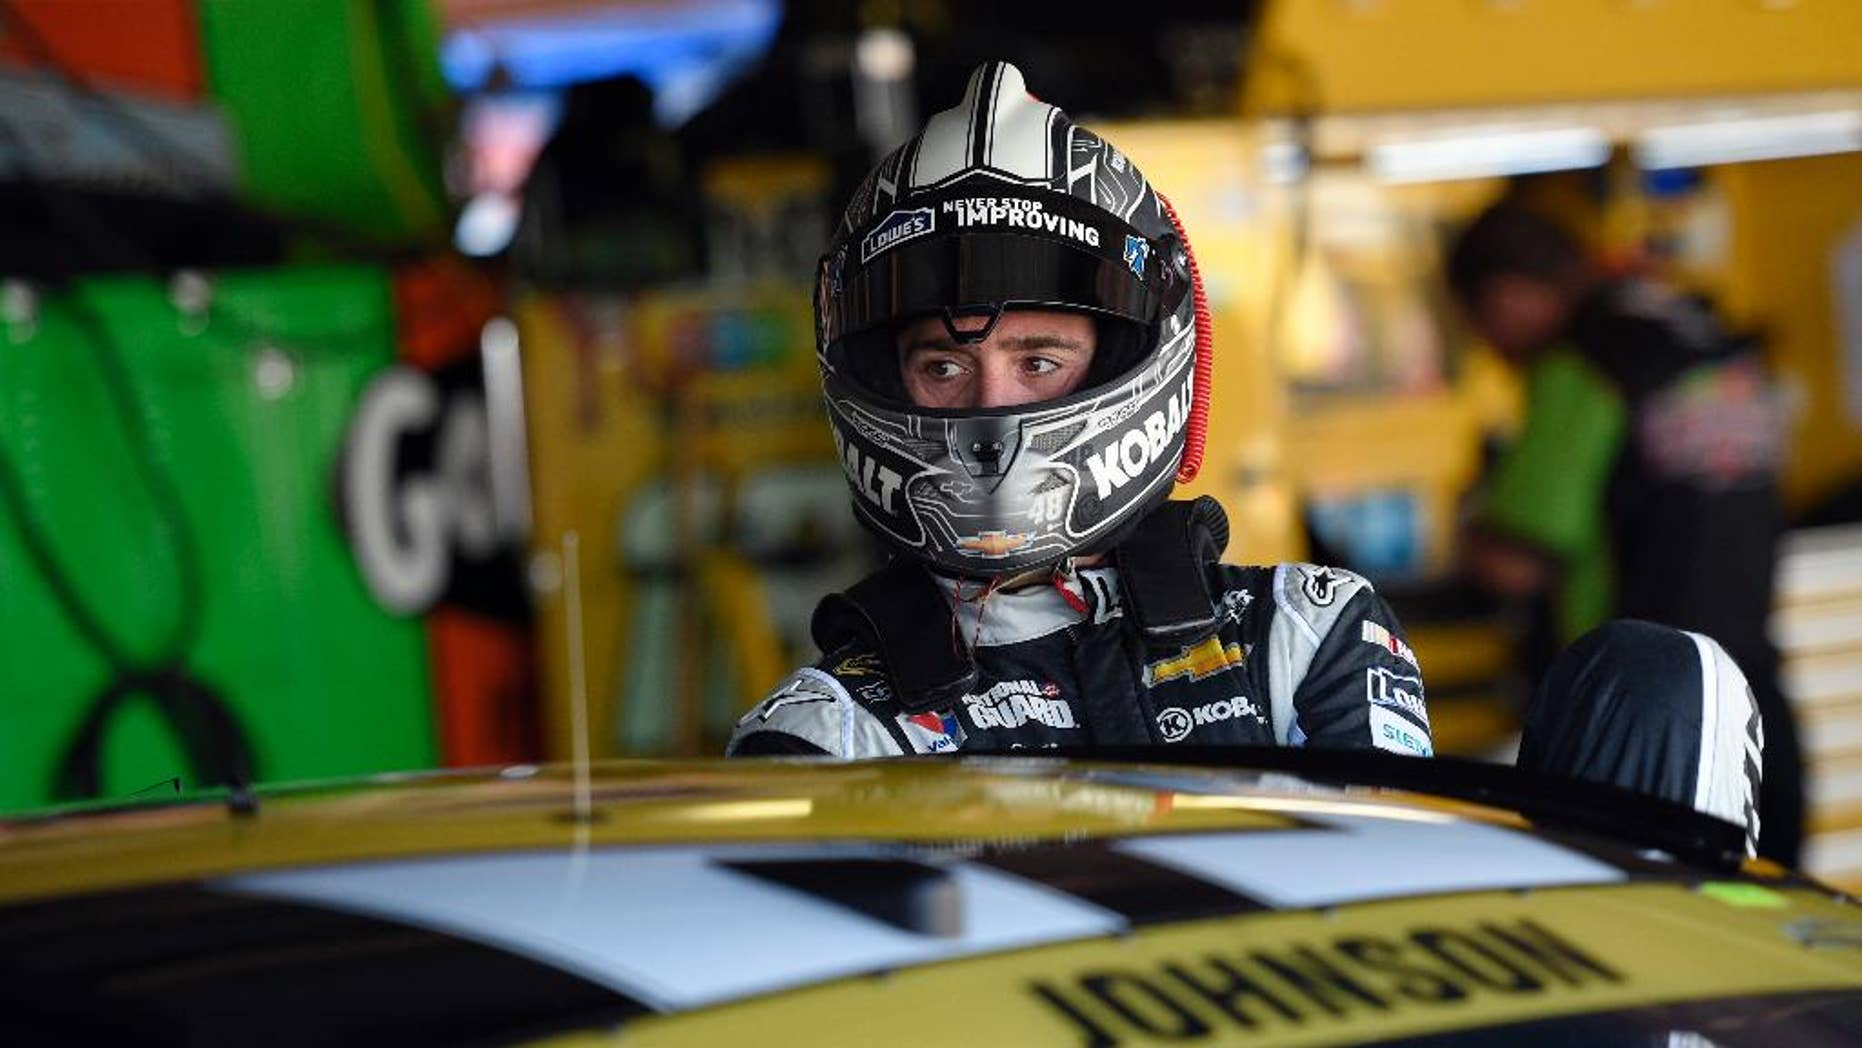 Driver Jimmie Johnson climbs into his car before practice for the NASCAR Sprint Cup series auto race, Friday, Sept. 26, 2014, at Dover International Speedway in Dover, Del. (AP Photo/Nick Wass)